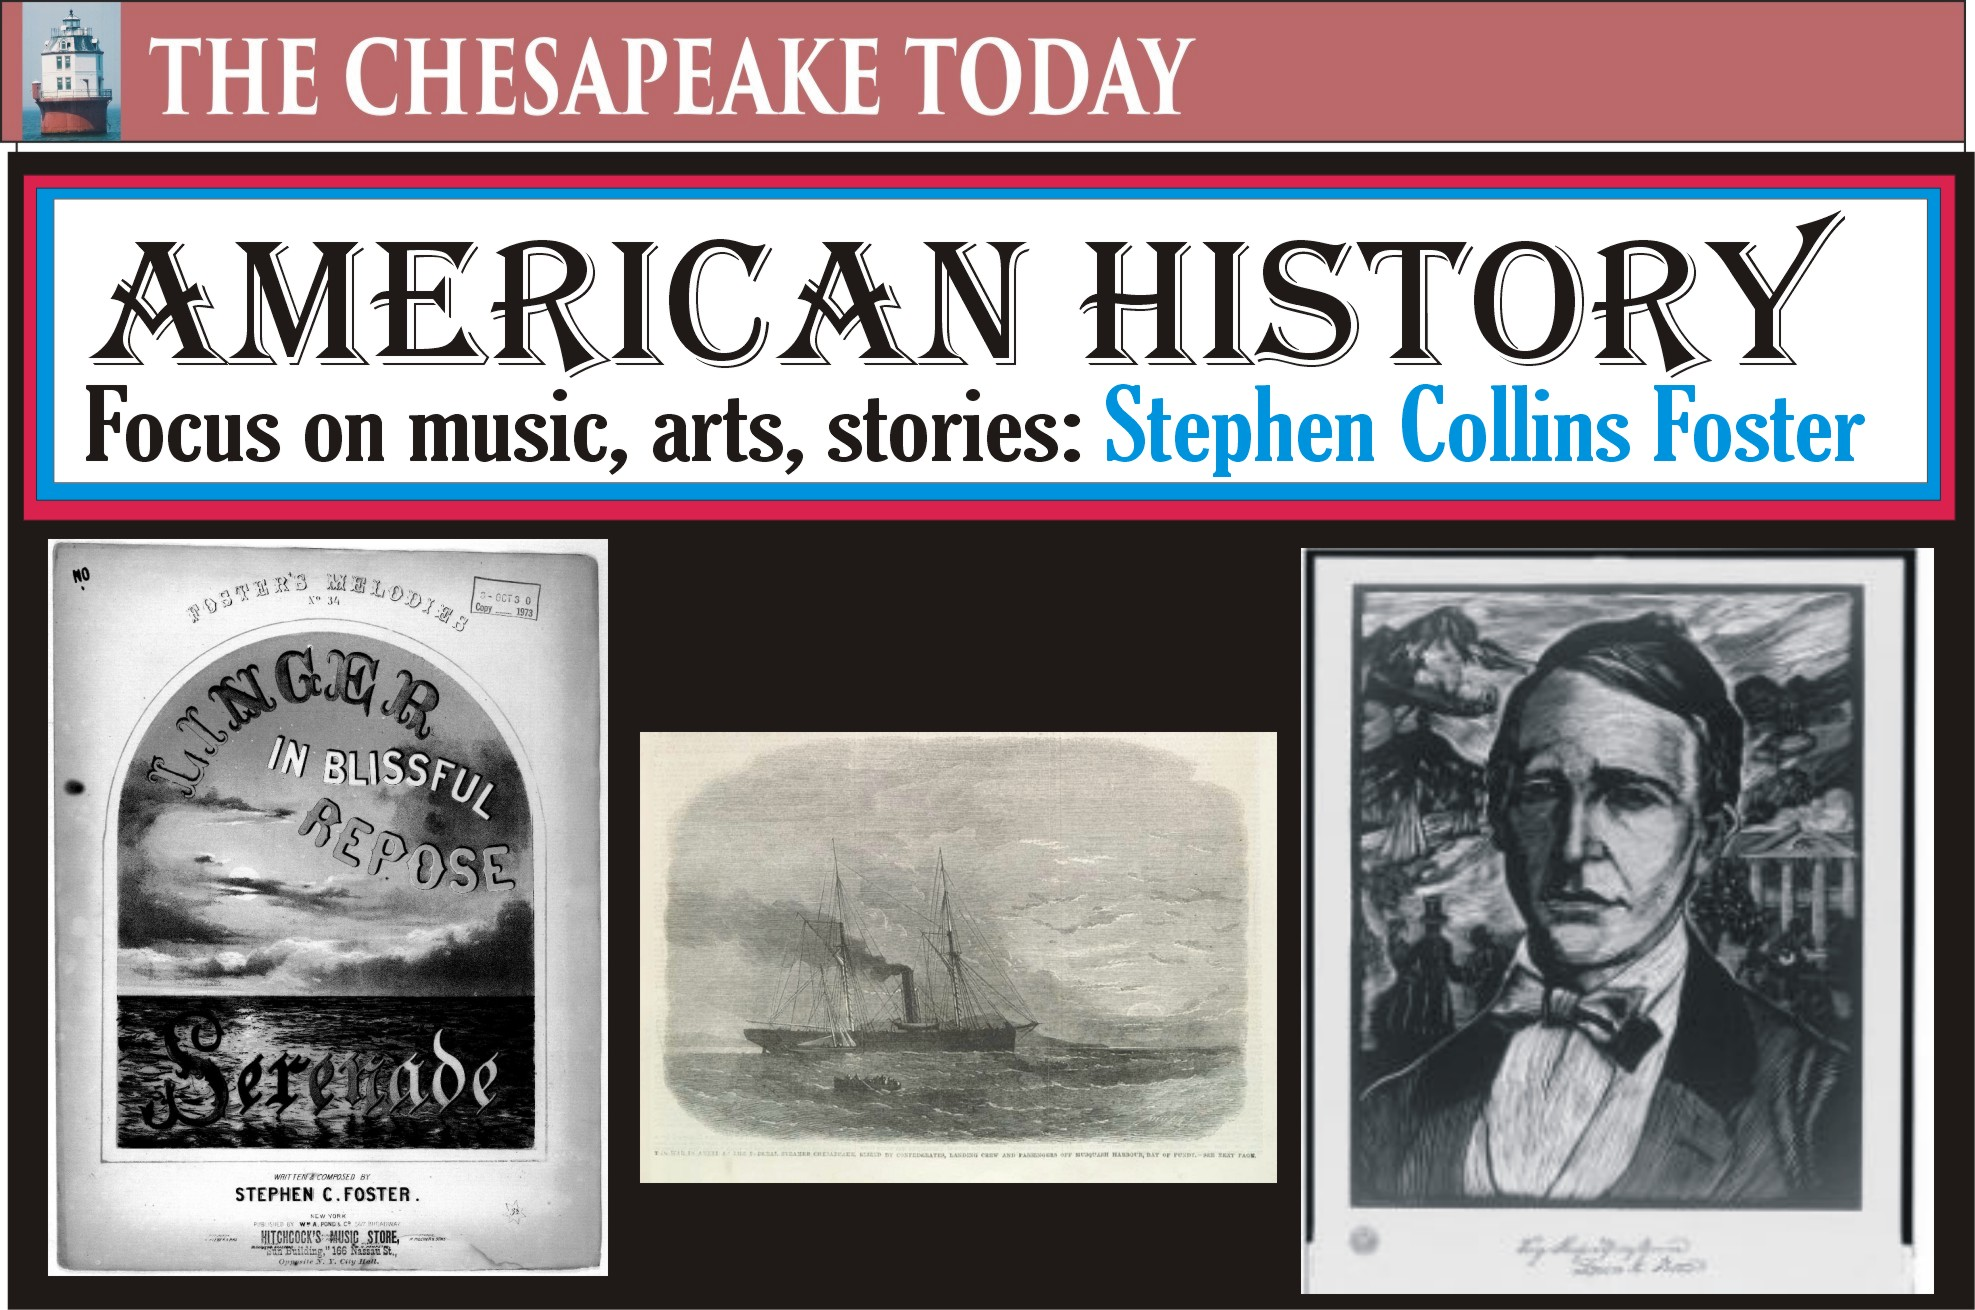 AMERICAN HISTORY: One of America's best composers – Stephen Collins Foster